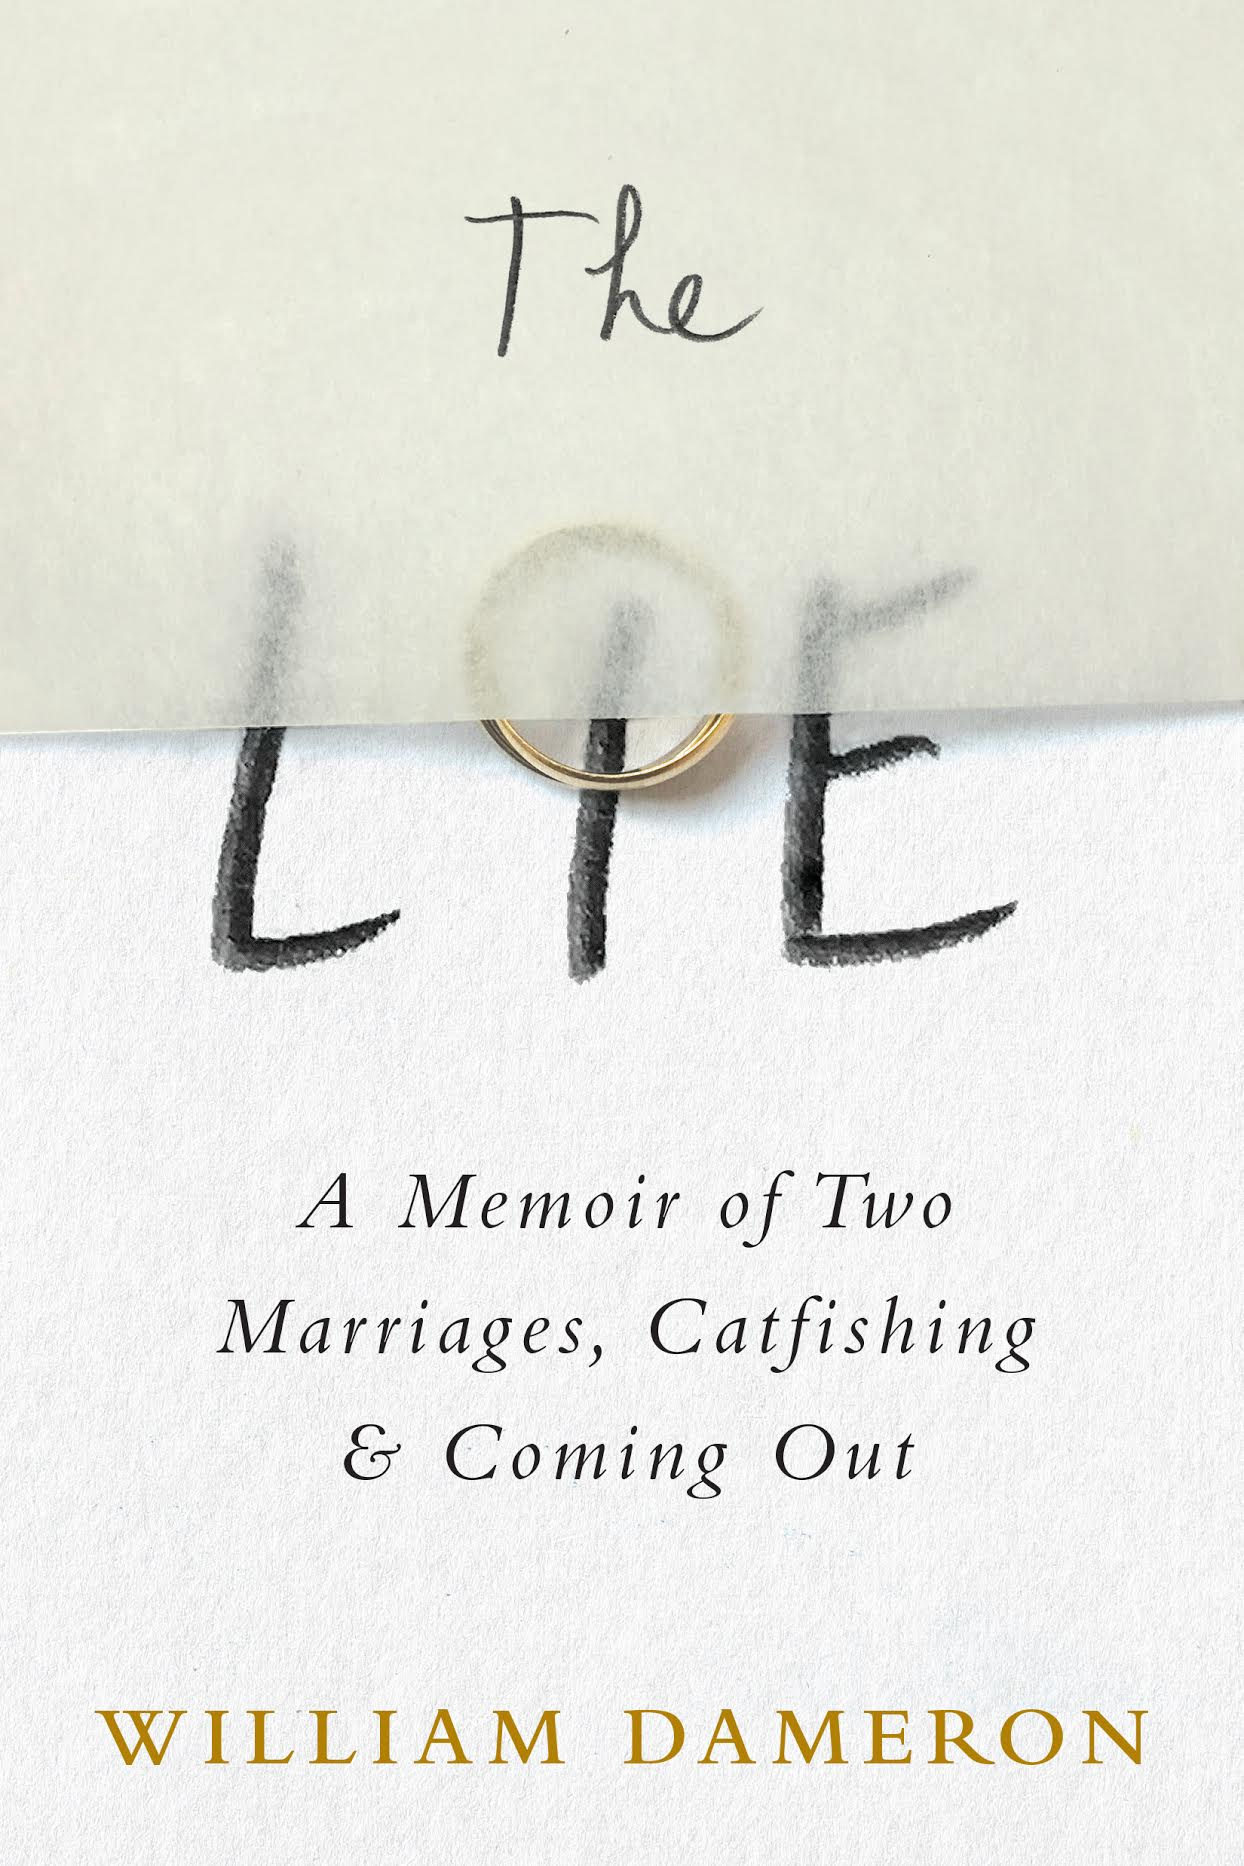 Book Launch: The Lie by William Dameron in conversation with Garrard Conley